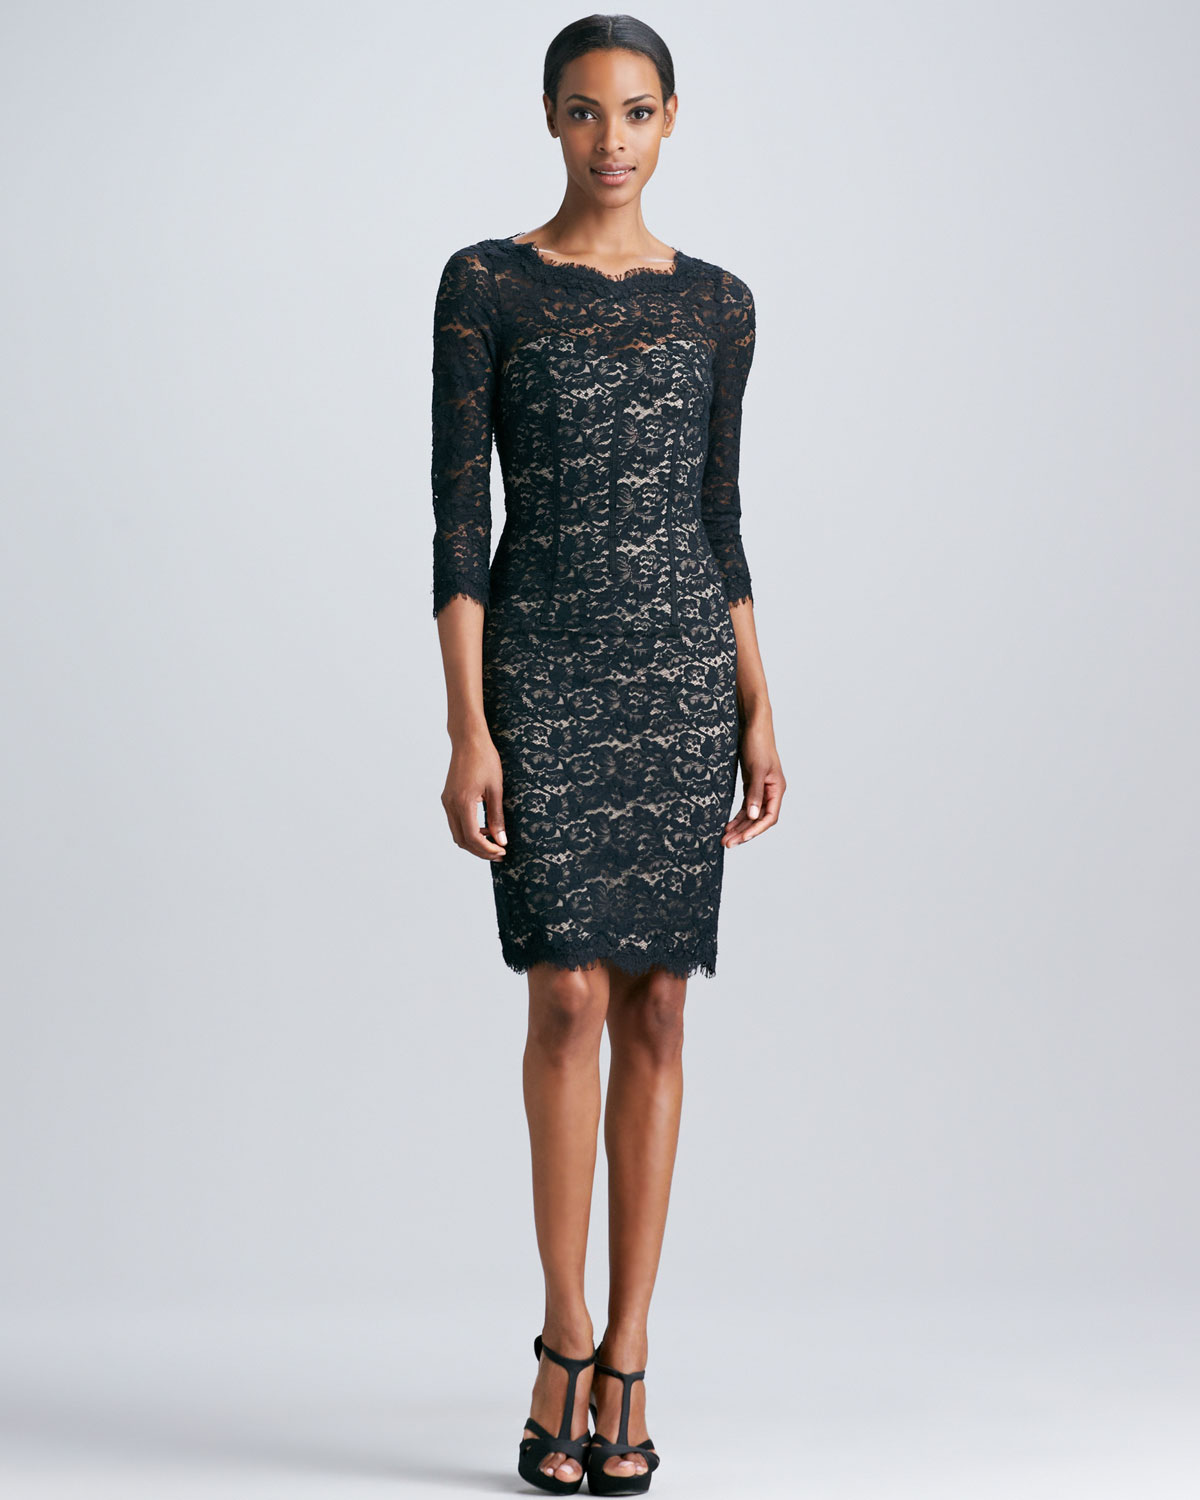 Watch - Back open lace cocktail dress video